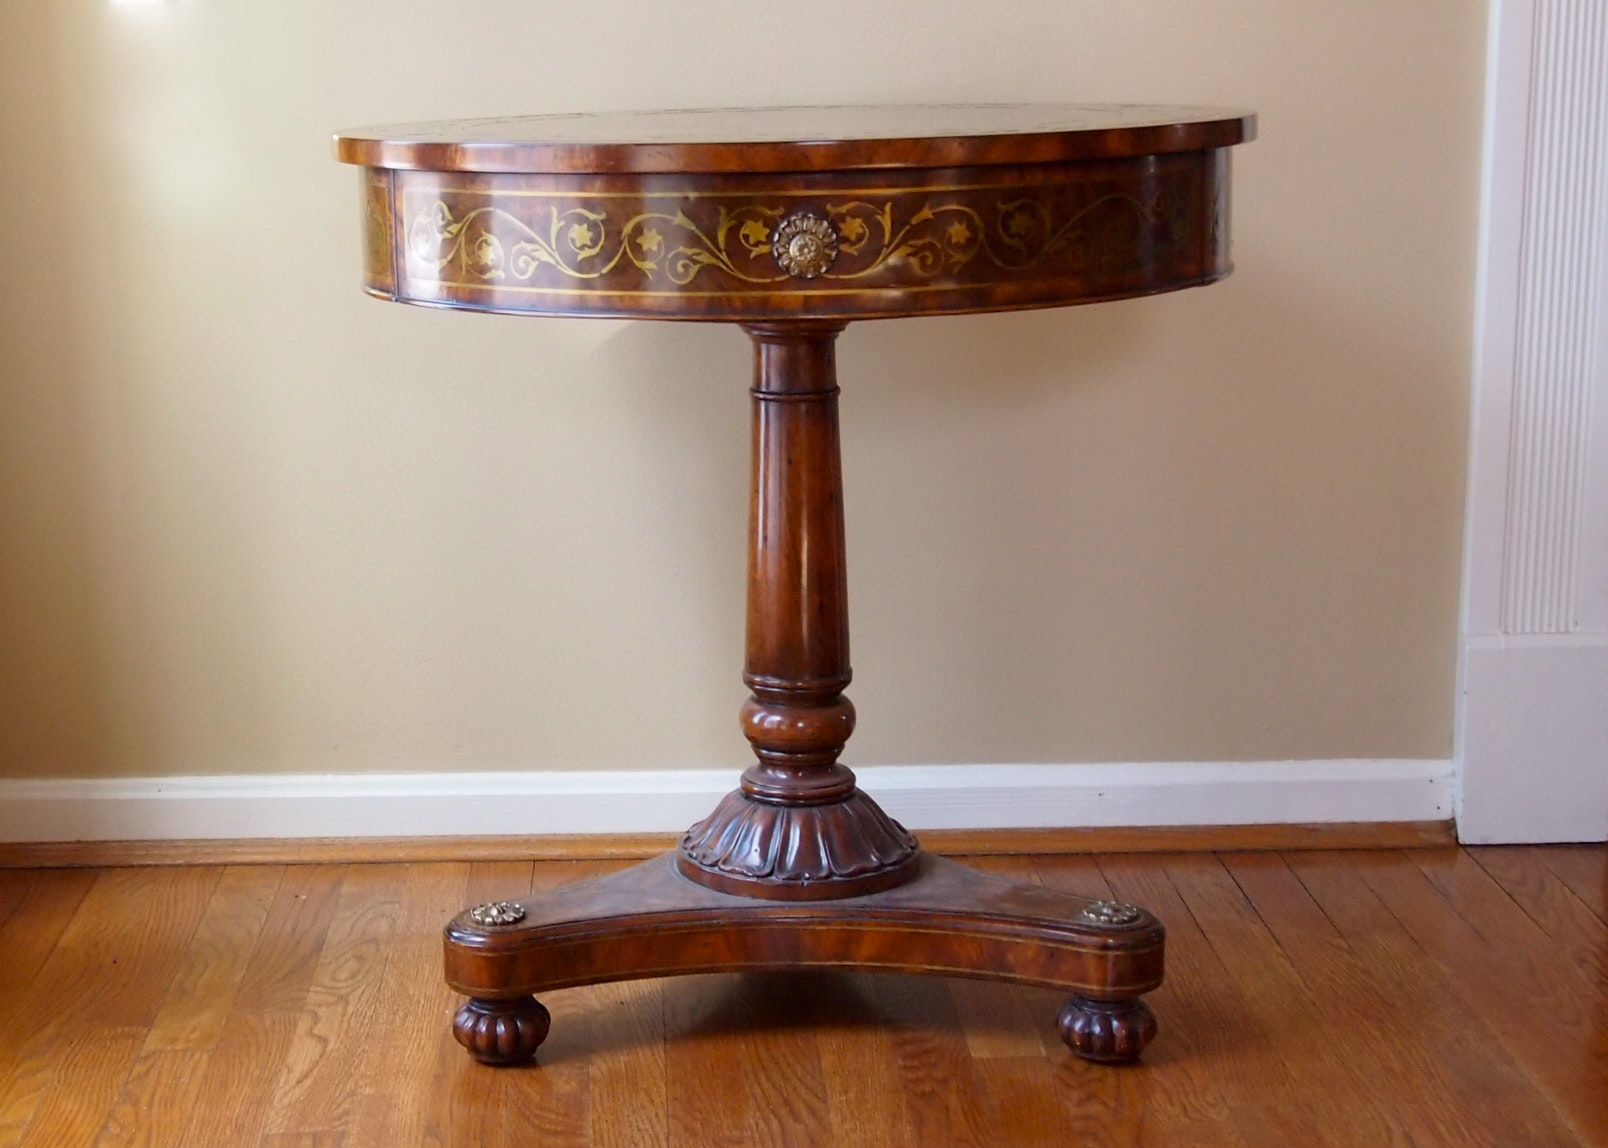 theodore alexander regency style centre table - Antique Furniture For Sale